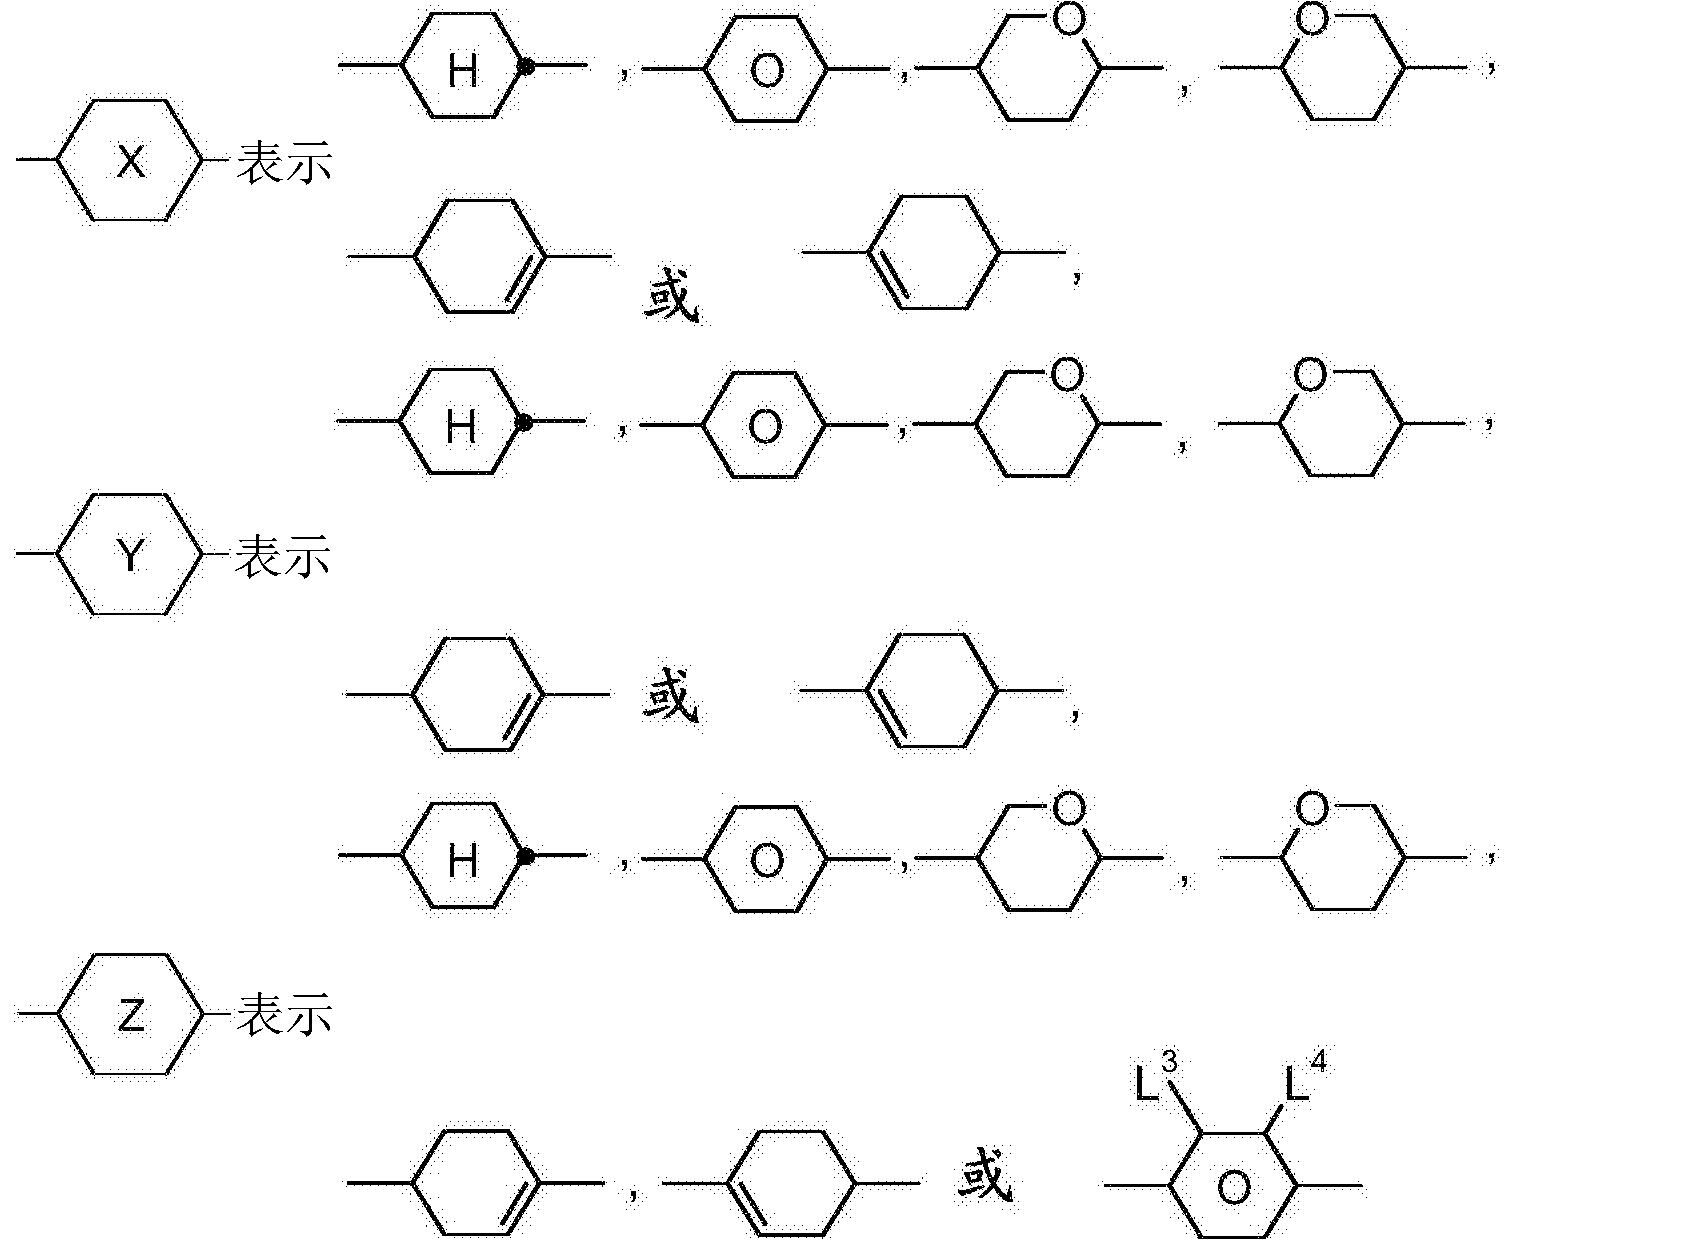 Cn106947497a Polymerizable Compounds And The Use Thereof In Liquid Transmissive Film 8211 Working Figure Cn106947497ad01011